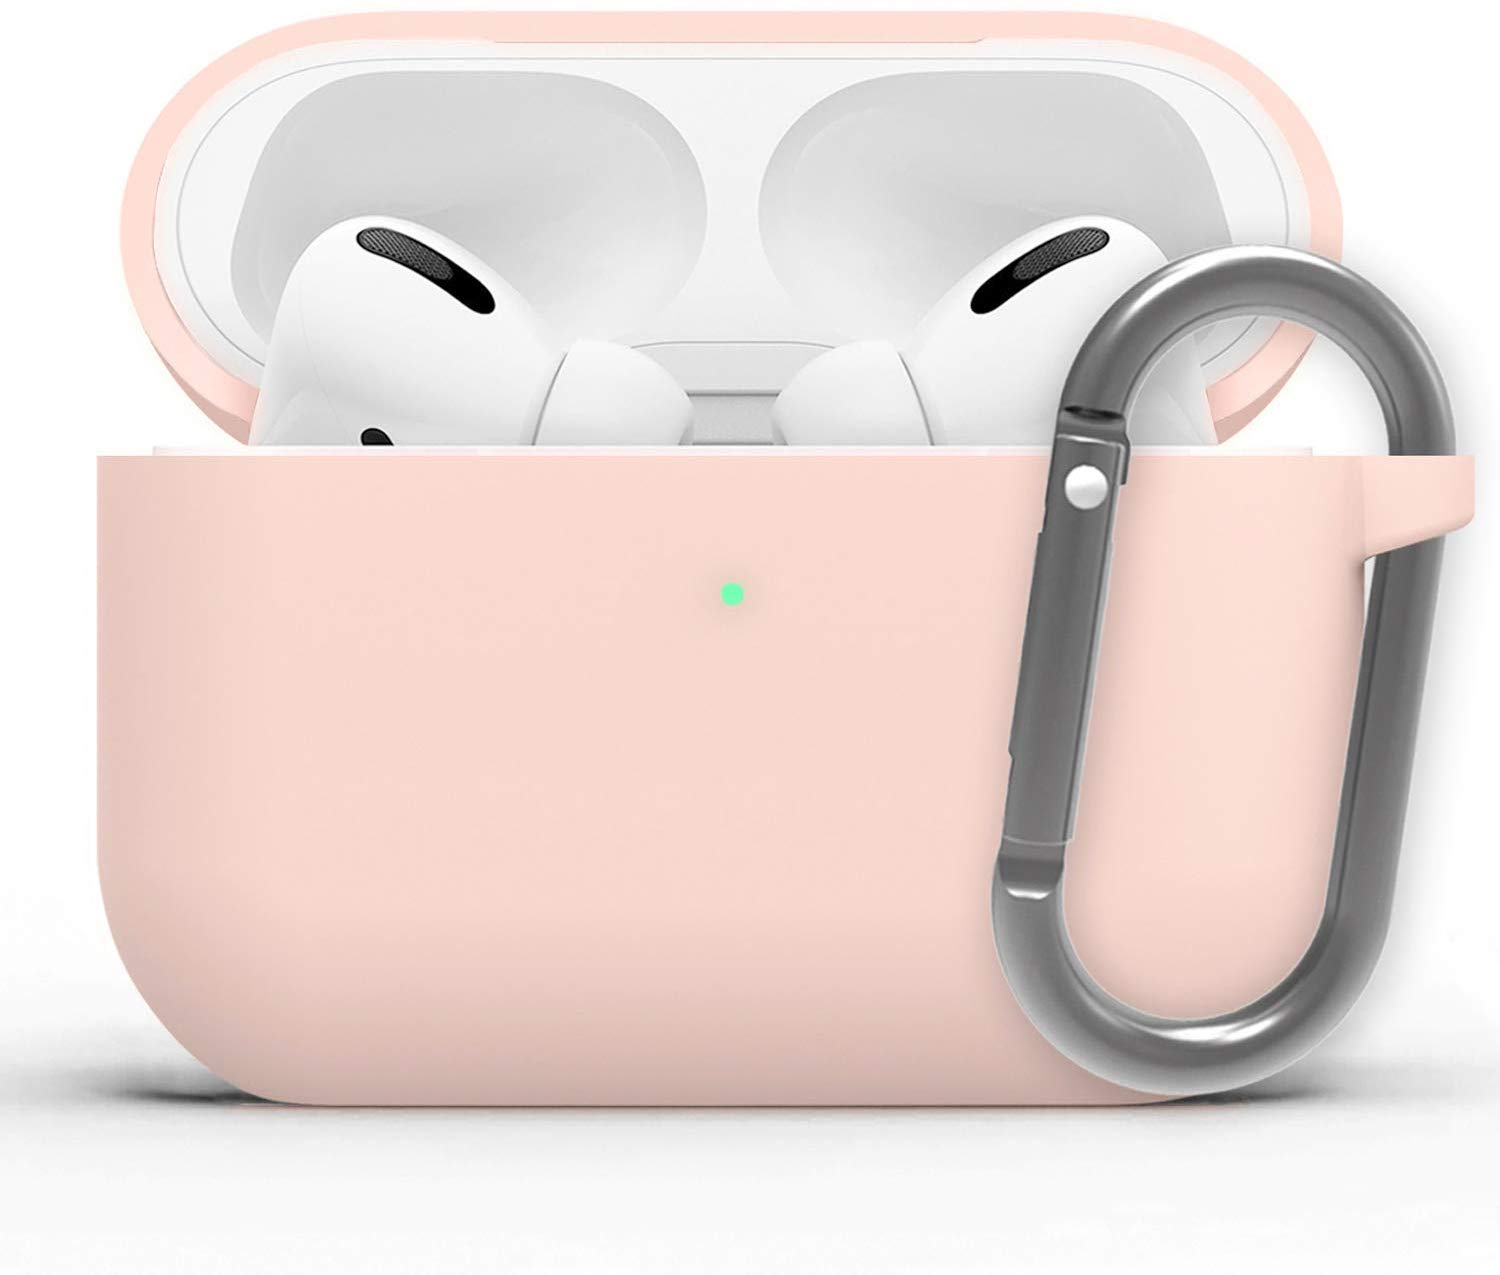 Easyworld Compatible AirPods Pro Case Cover @ Amazon 60% off AC / Free Prime Shipping $2.76